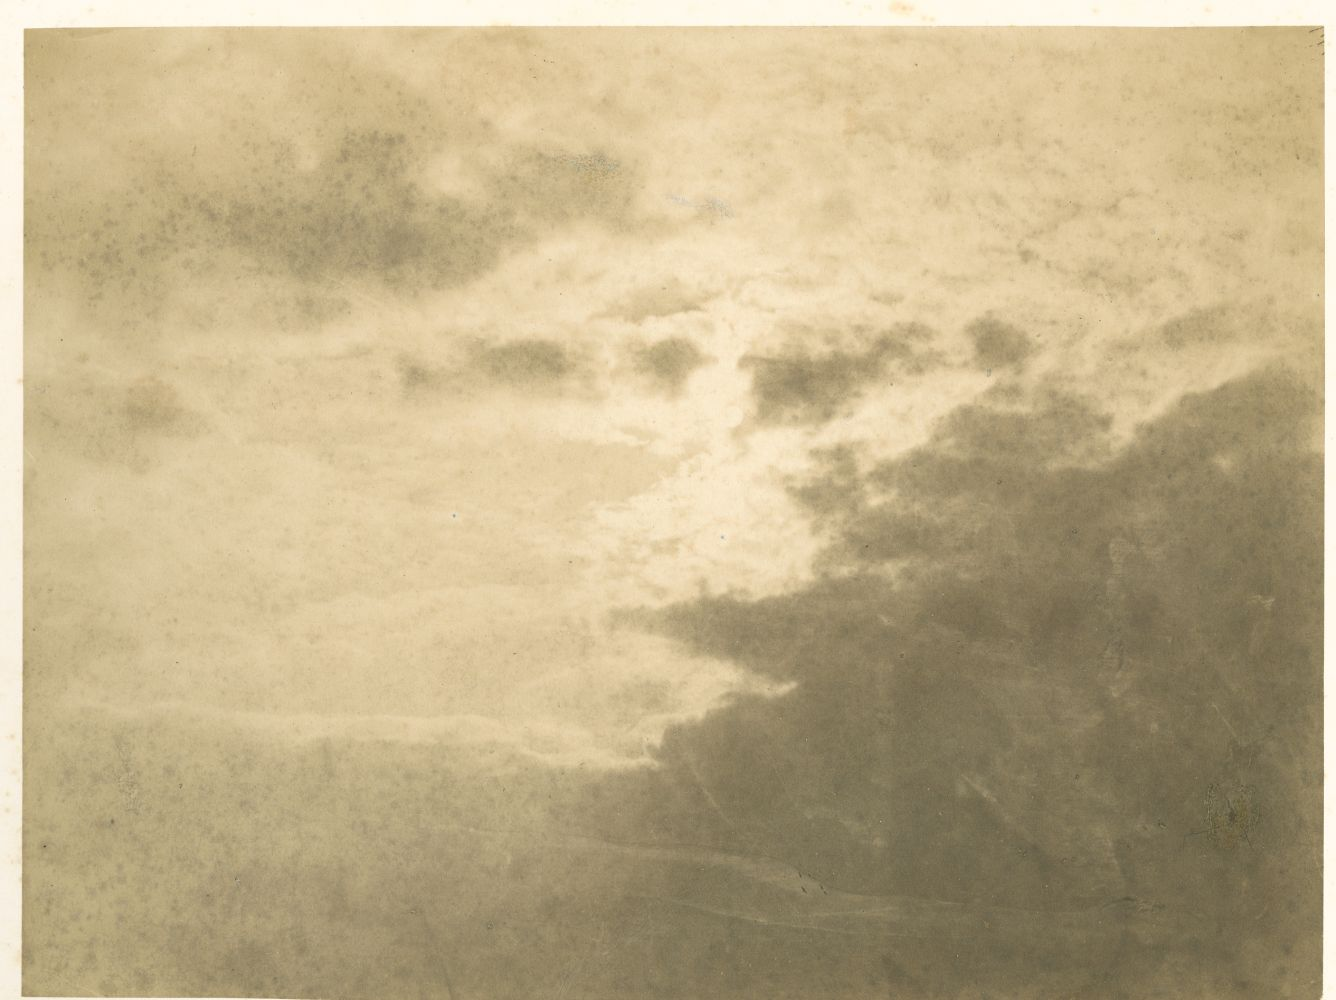 Charles MARVILLE (French, 1816-1879) Cloud Study*, mid 1850s Albumen print 6.18 x 8.23 inches 15.7 x 20.9 cm 15.7 x 20.9 cm, mounted